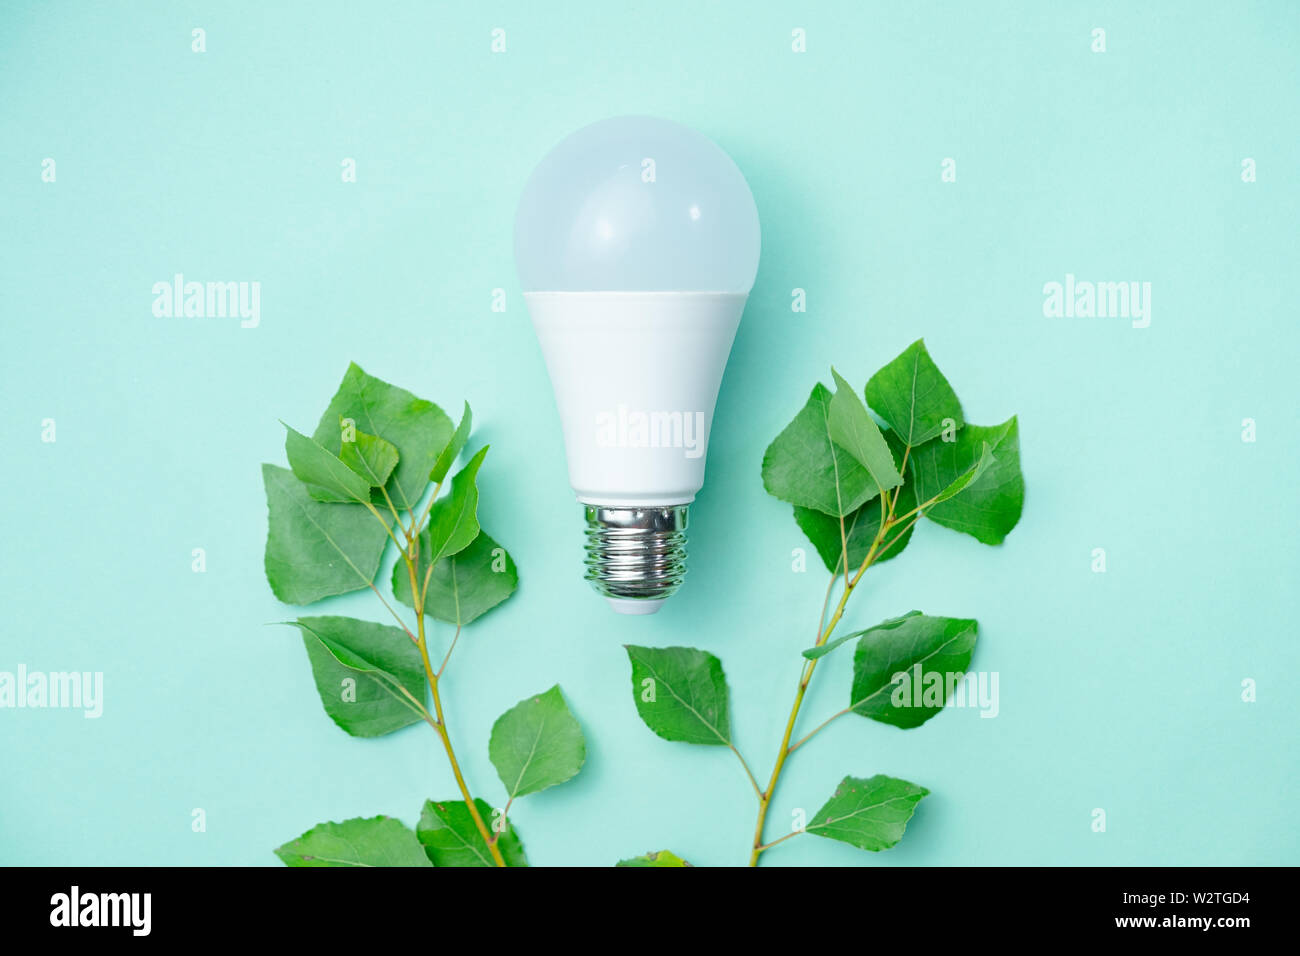 Led lightbulb and green leaves - energy saving concept. Abstract image symbolizing environmental awareness and economical usage of electricity - Stock Image